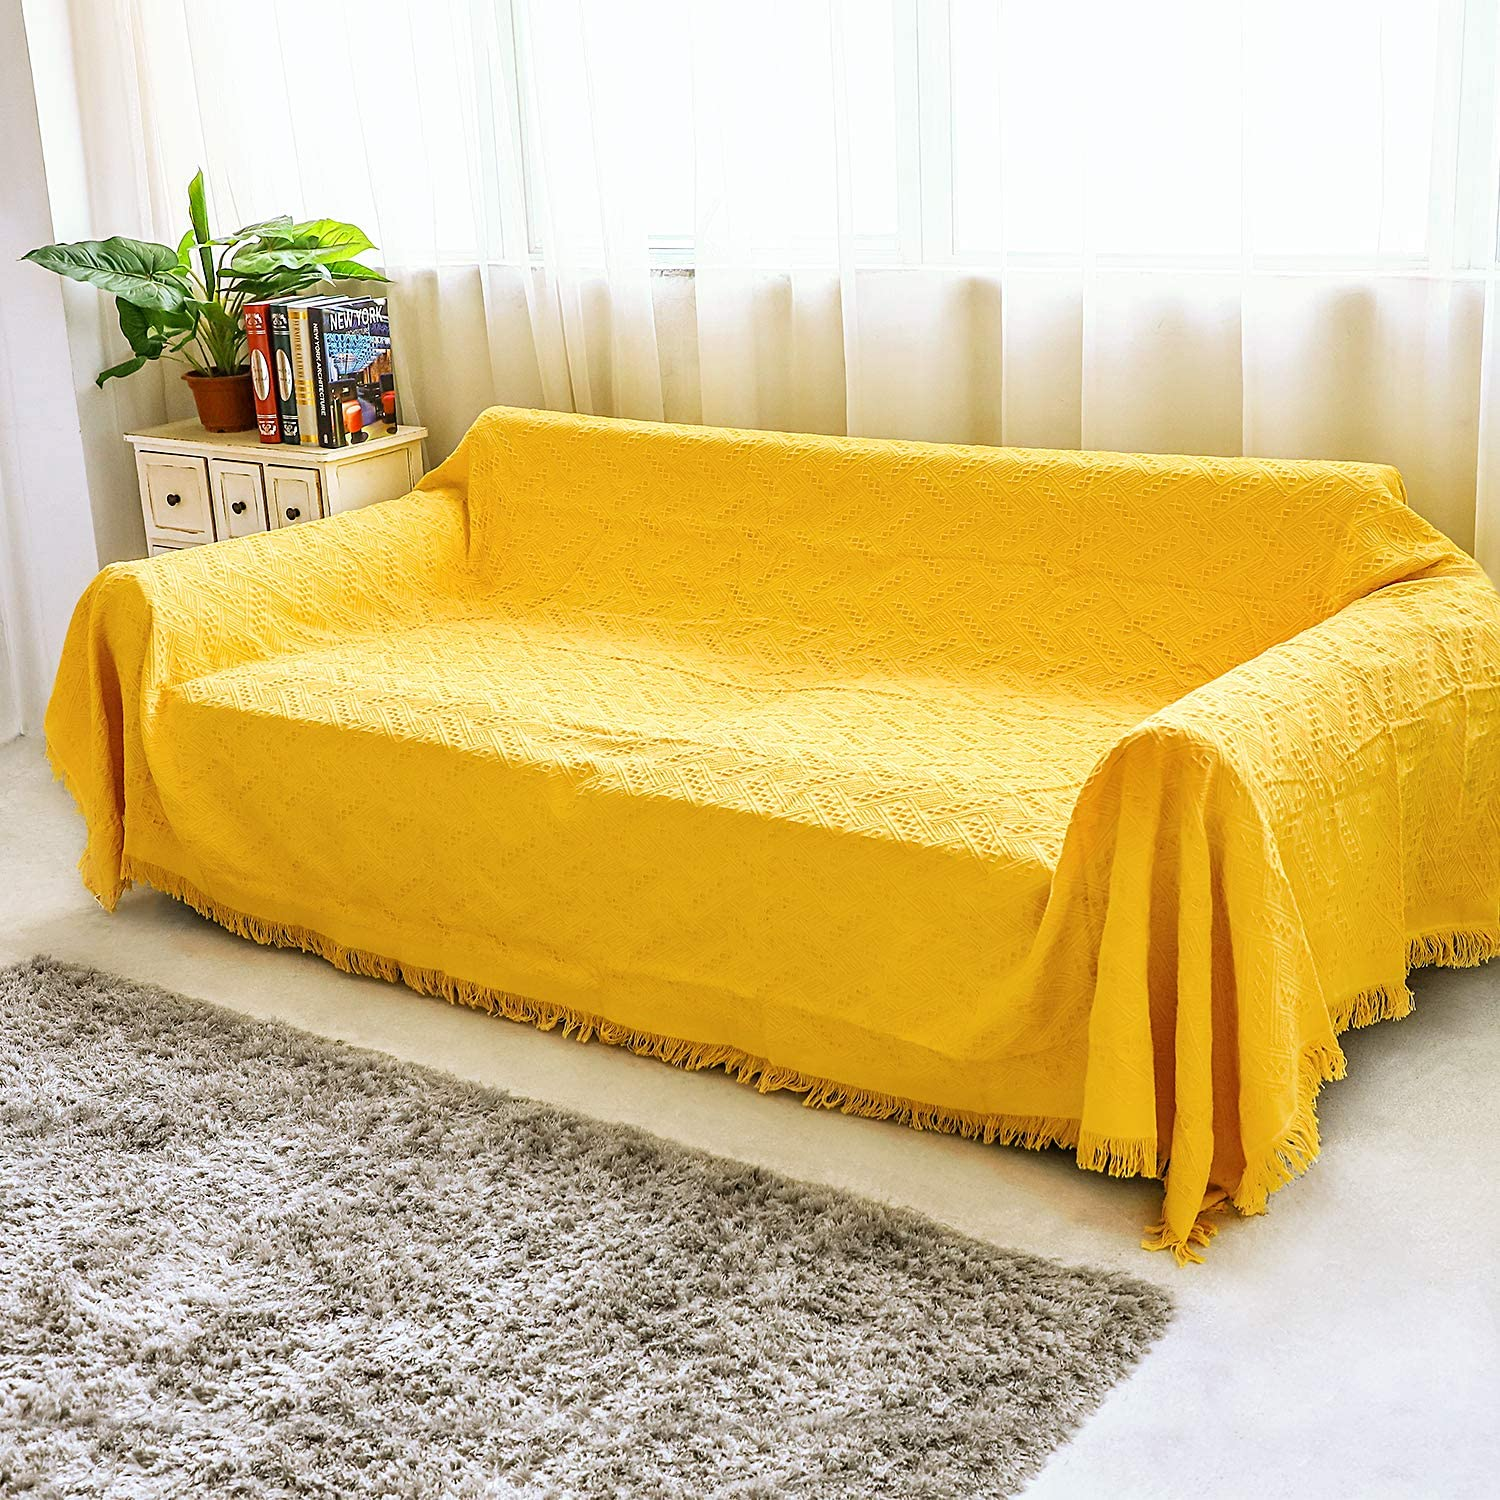 HOUSE DAY Sofa Slipcovers Couch Slip Cover, Soft Lightweight Throw Blanket, Decorative Knitted with Fringe, Sofa Couch Covers for 3 Cushion Couch, Linen Couch Cover Couch Protector (Yellow, Large)